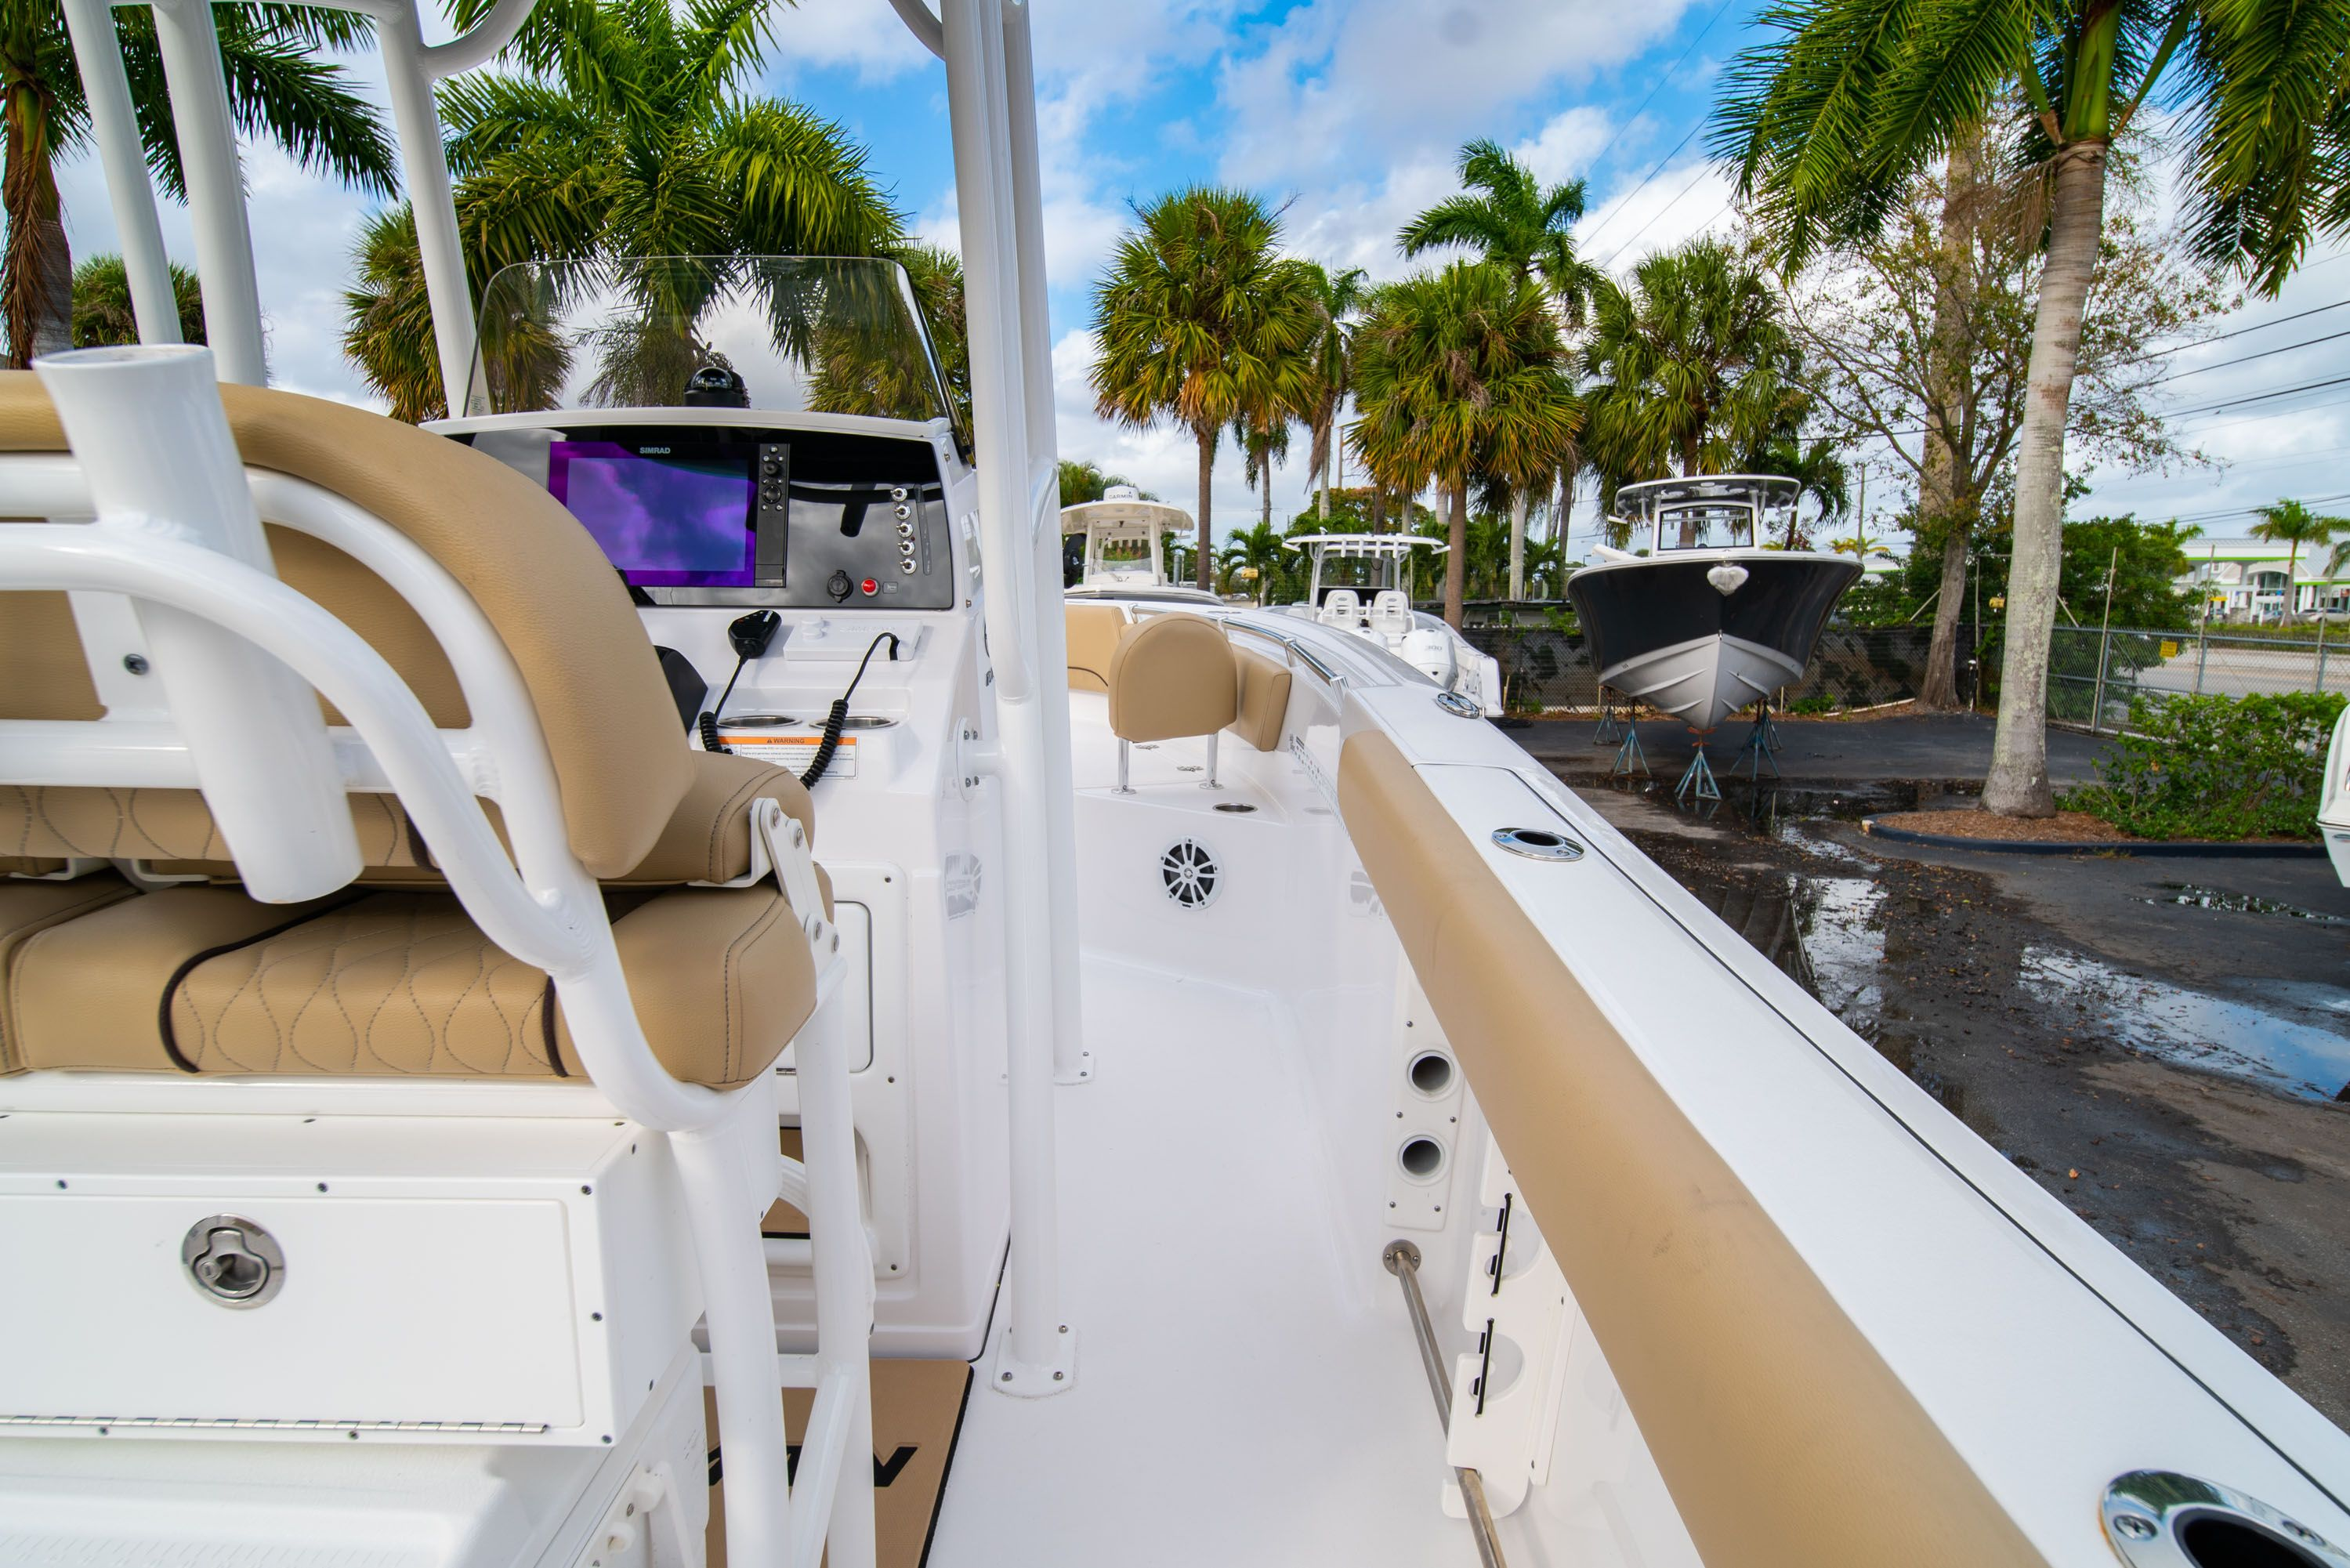 Thumbnail 17 for Used 2018 Sportsman Open 232 Center Console boat for sale in West Palm Beach, FL